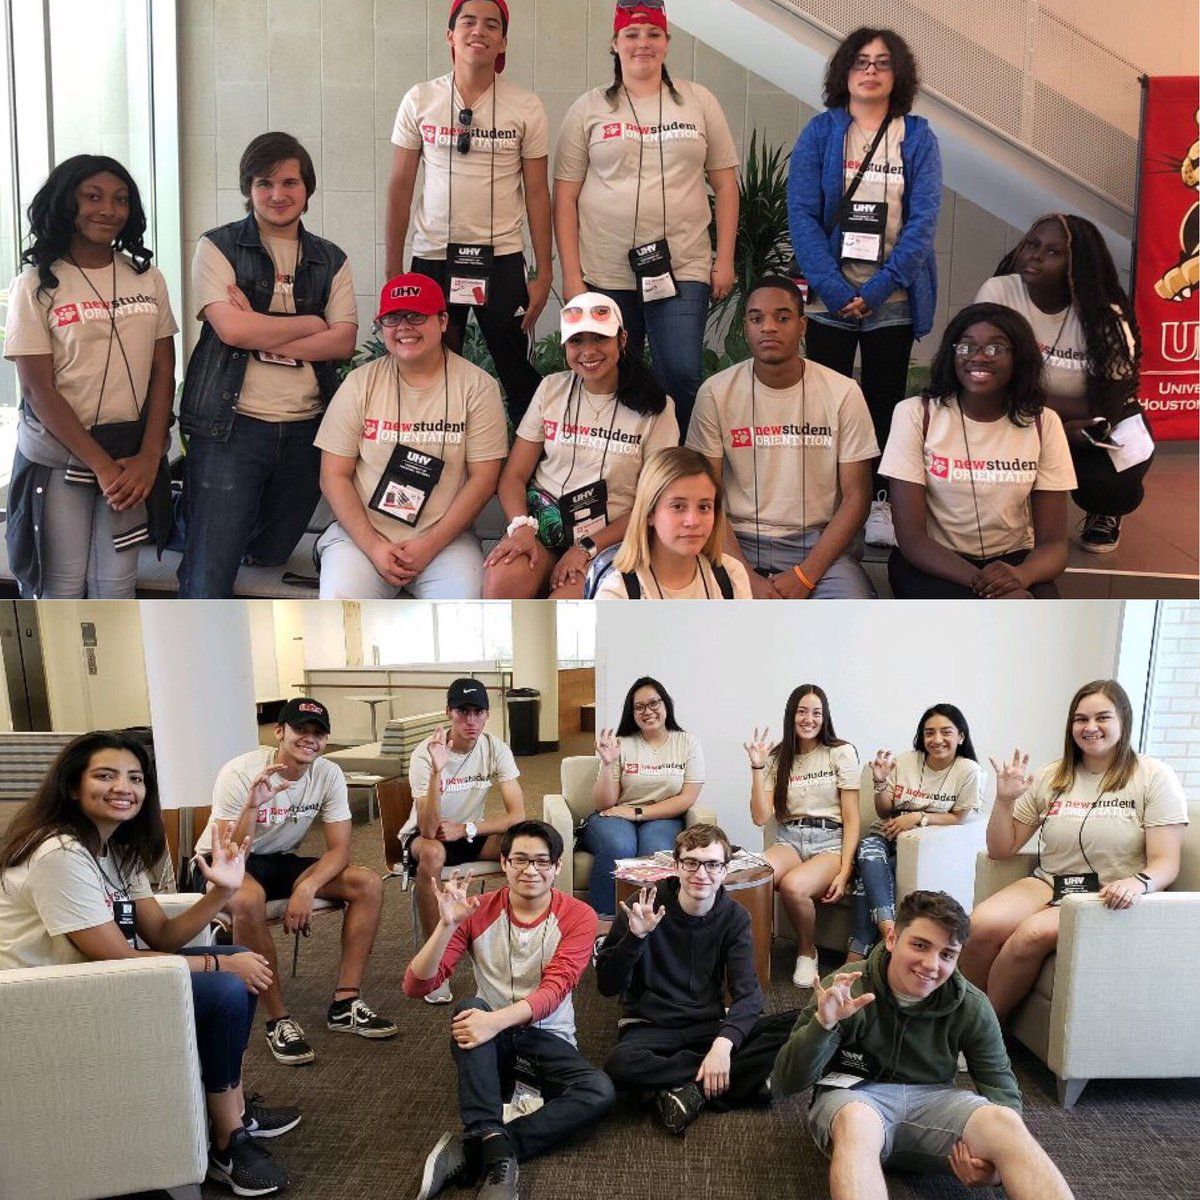 Here's some awesome moments from our last orientation! Can't wait to make more memories this week! #UHVNSO #JAXNATION #StudentLife  <br>http://pic.twitter.com/7bRlADpfSg